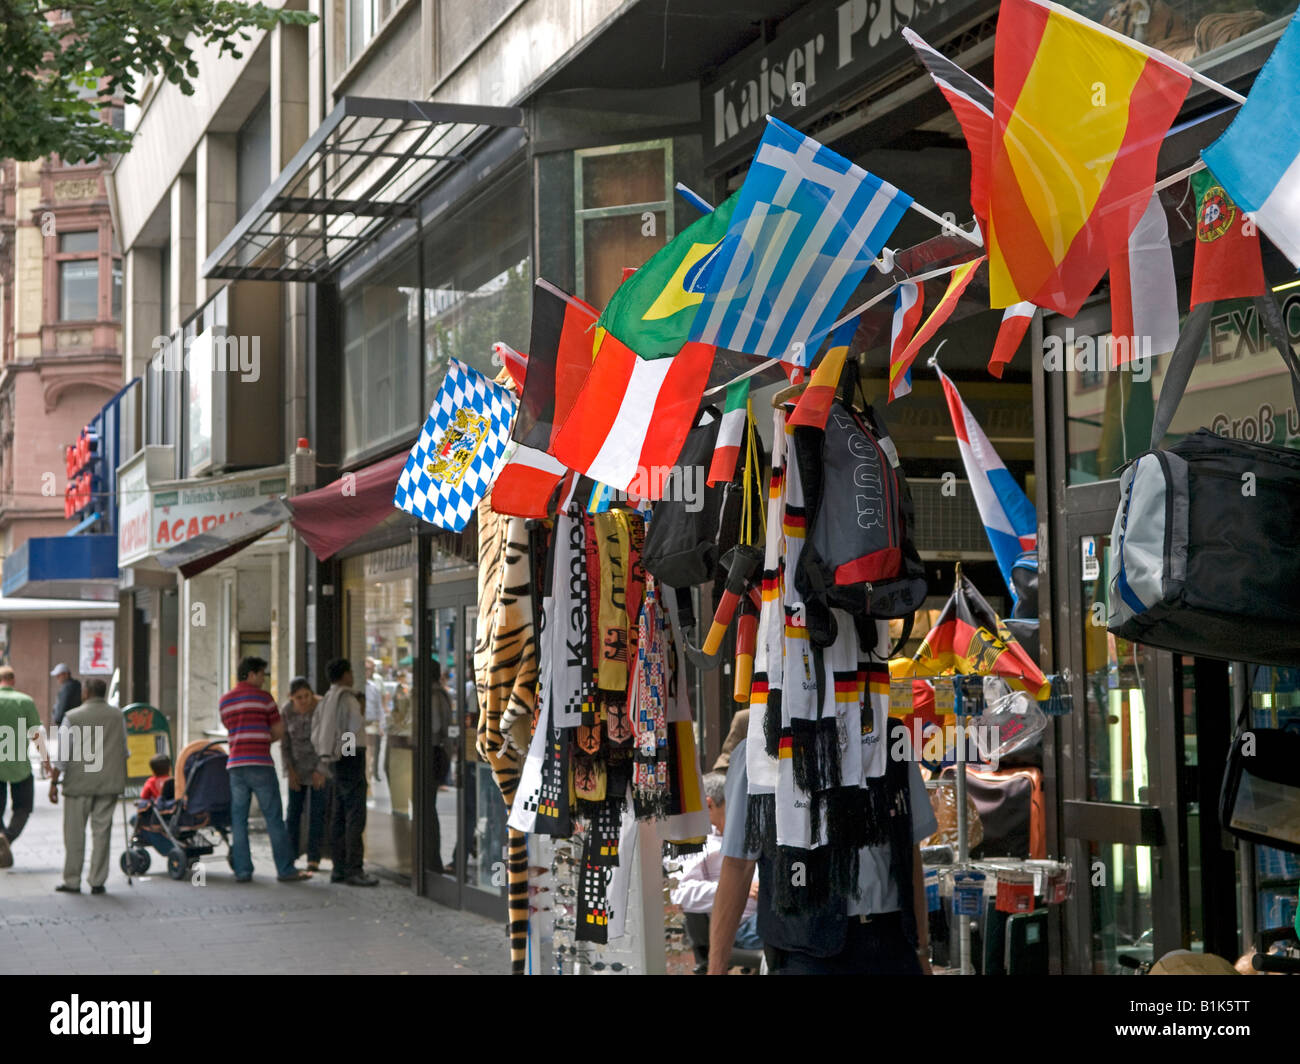 shop with souvenirs and gaudy utils for football fans like banner flag sharp tricot in Kaiserstraße Frankfurt - Stock Image